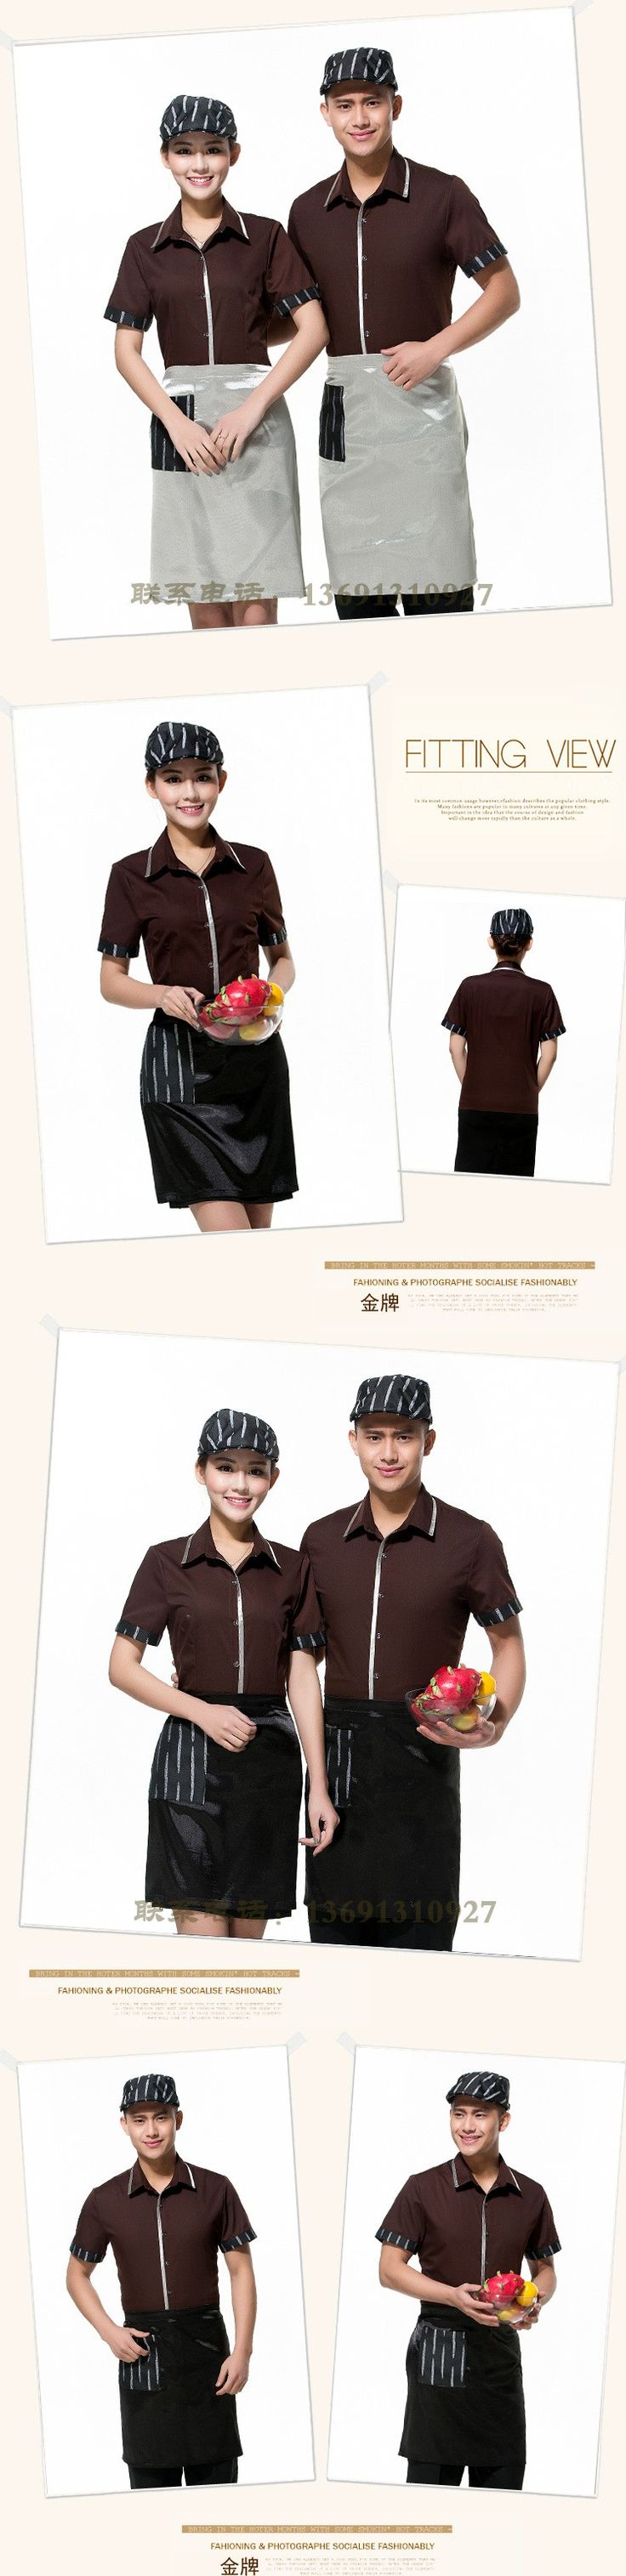 Aliexpress.com : Buy Fashion hotel cafeteria restaurant supermarket shopping guider uniform waiter workwear free apron from Reliable apron fashion suppliers on Raylayland-Fitted Workwear Store